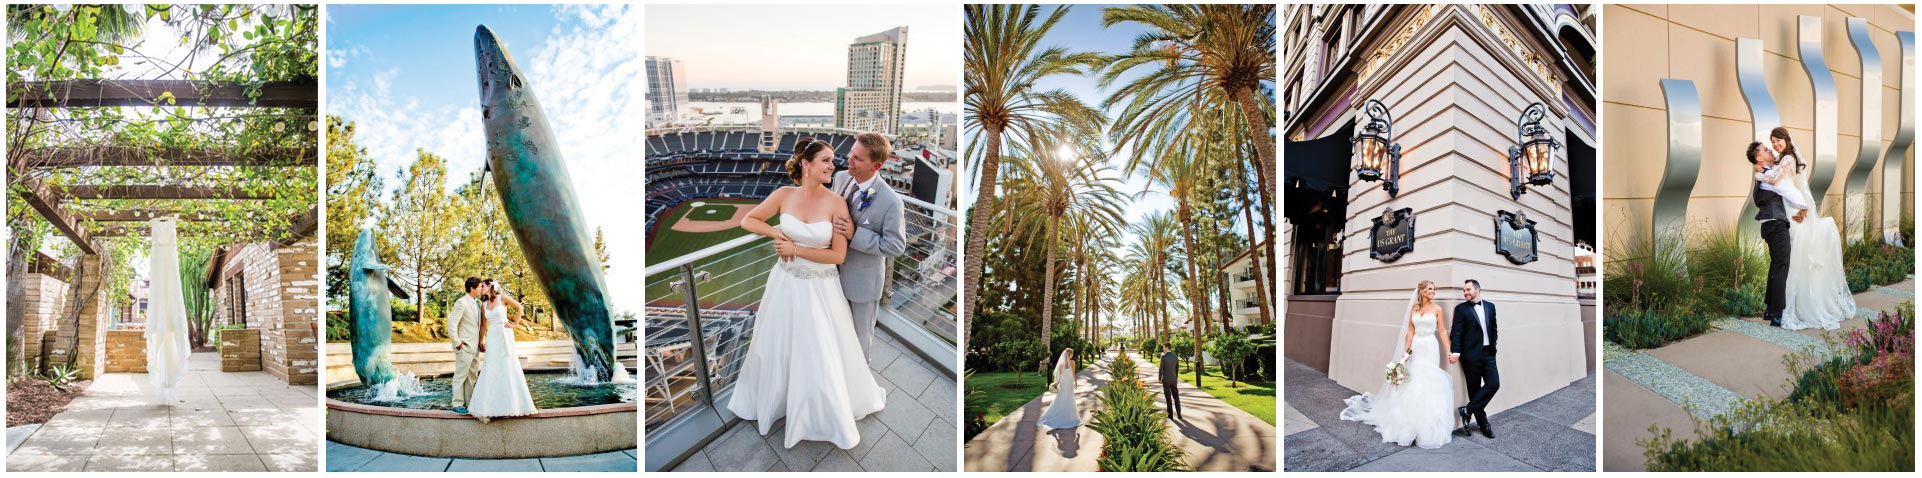 san diego wedding venue guide